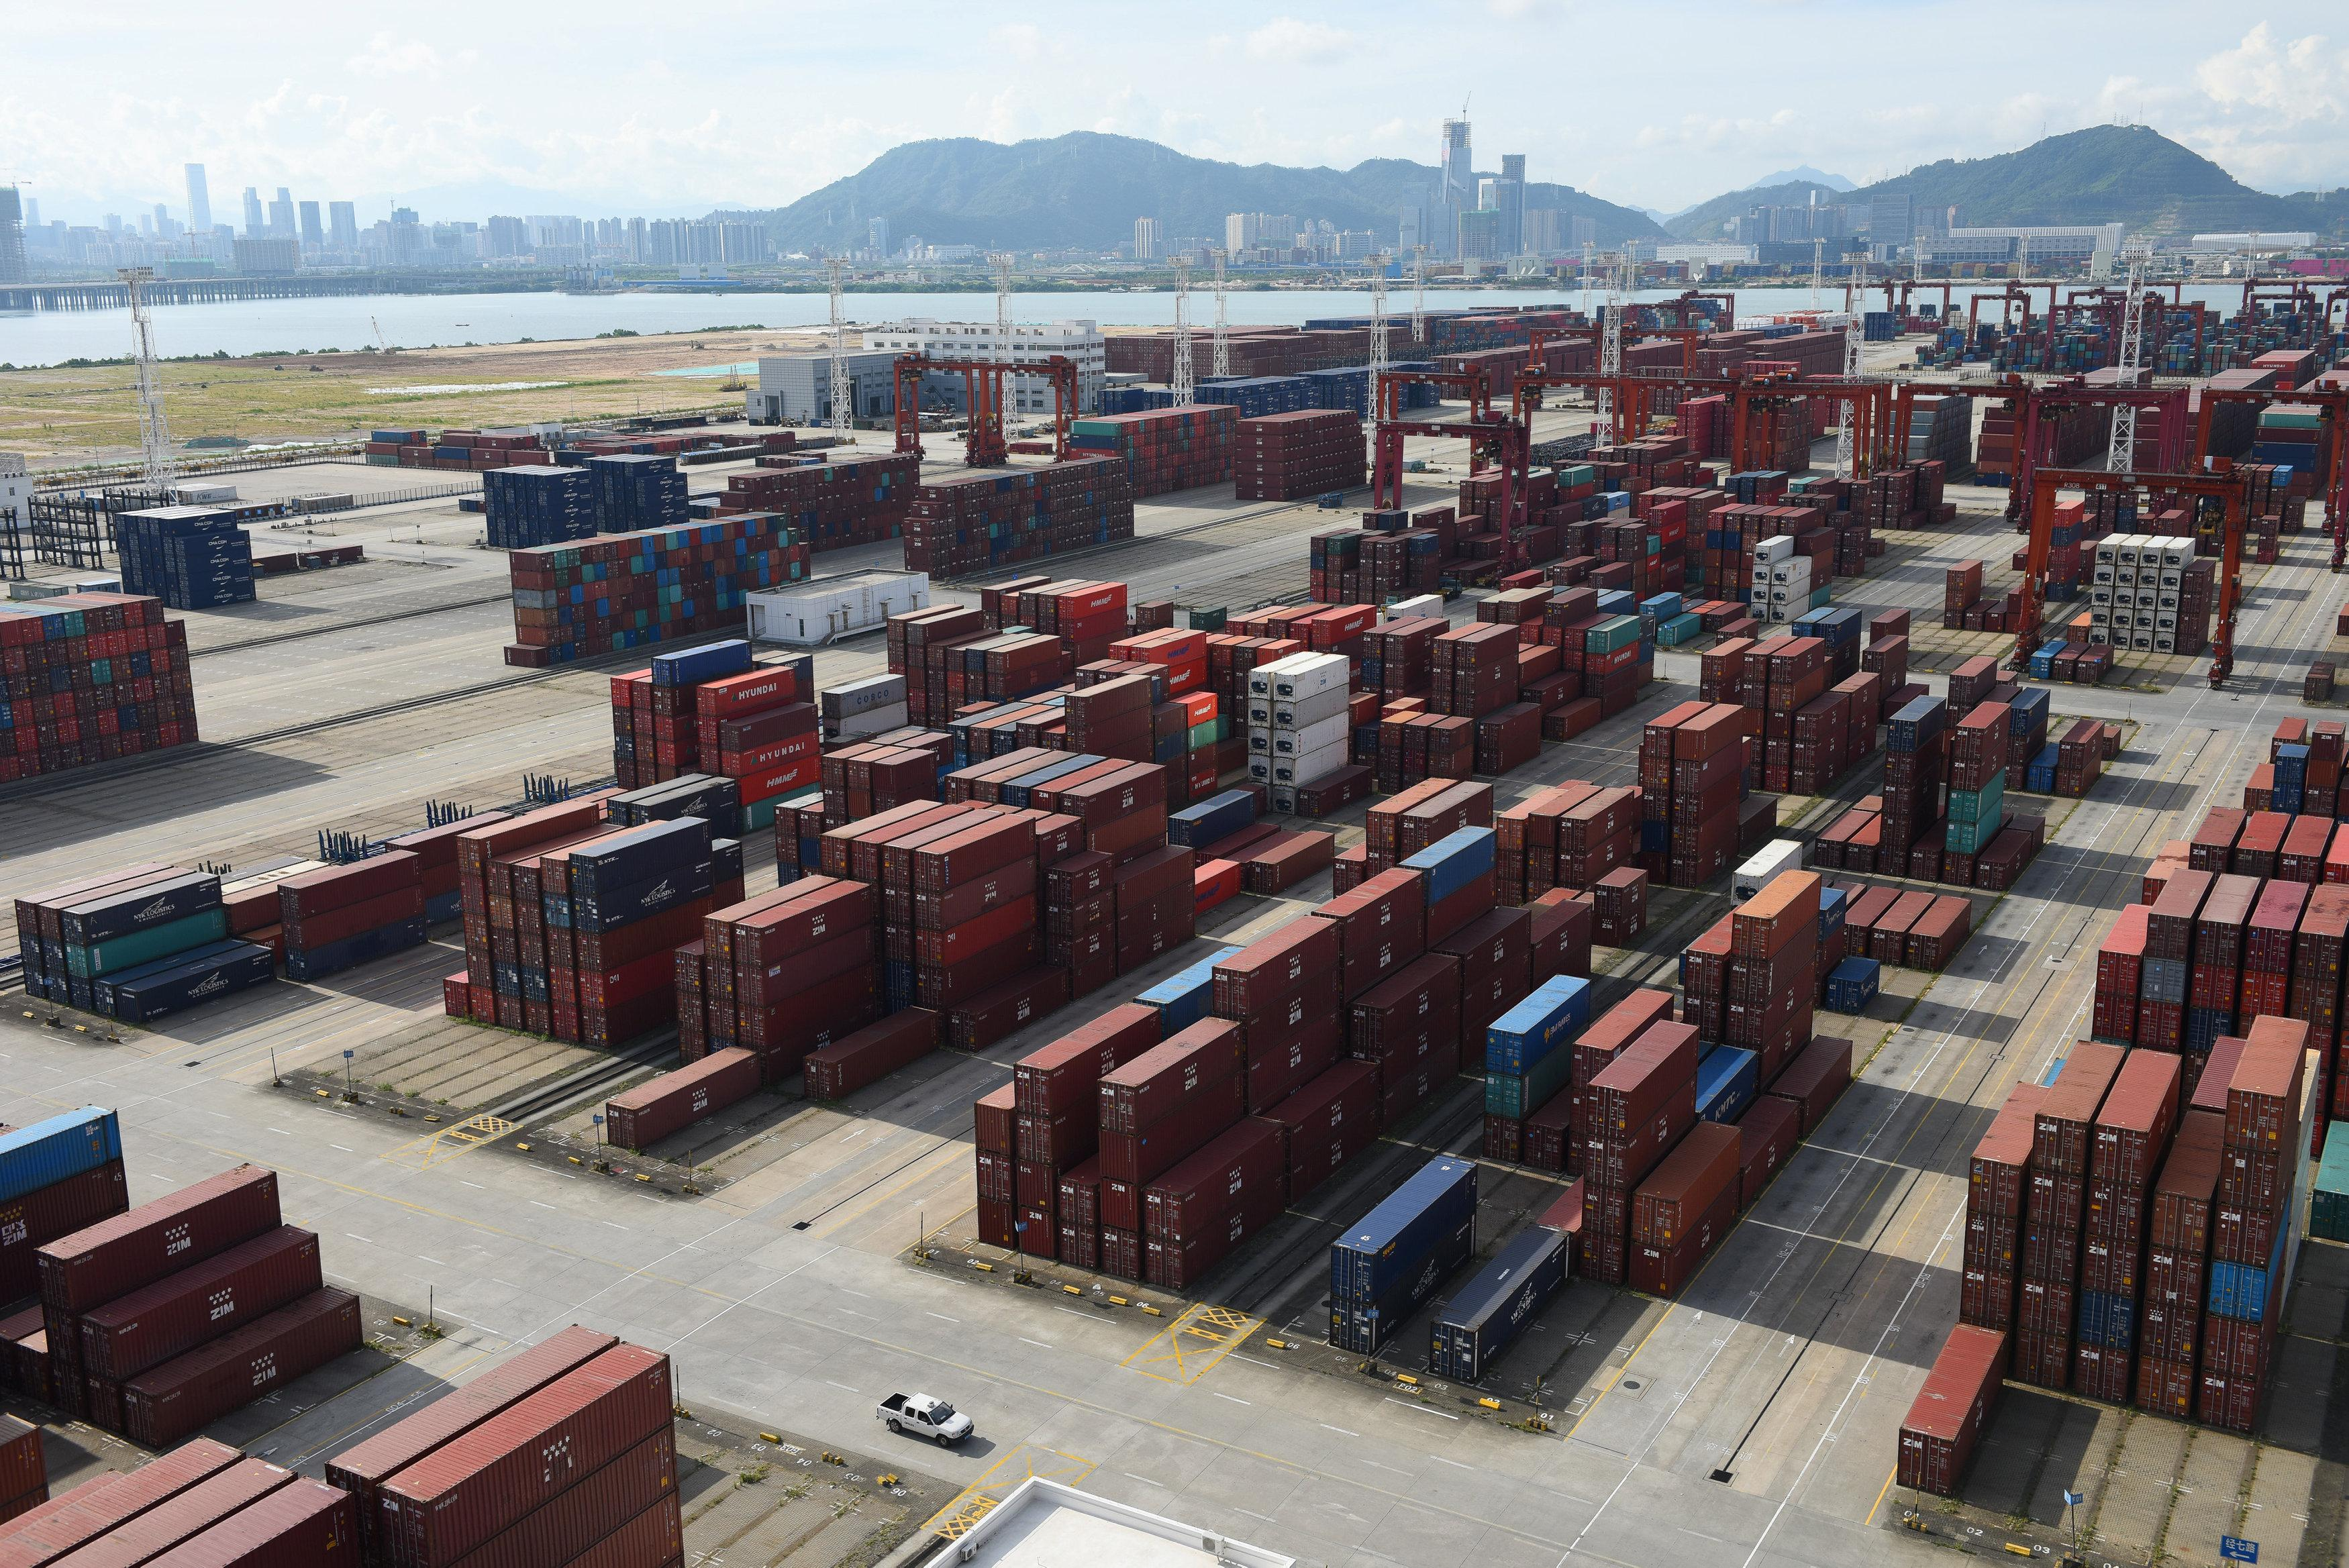 Shipping containers are seen stacked at the Dachan Bay Terminals in Shenzhen, Guangdong province, China July 12, 2018. Stringer